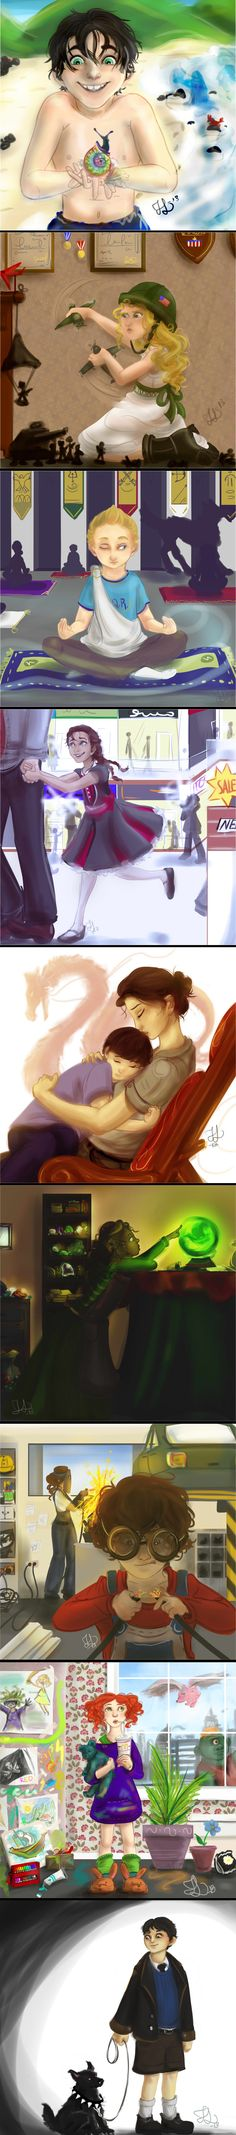 PJO+HOO Kids by SmarsPD on deviantART <<< this is so beautiful. I have tears in my eyes. the feels are too much.